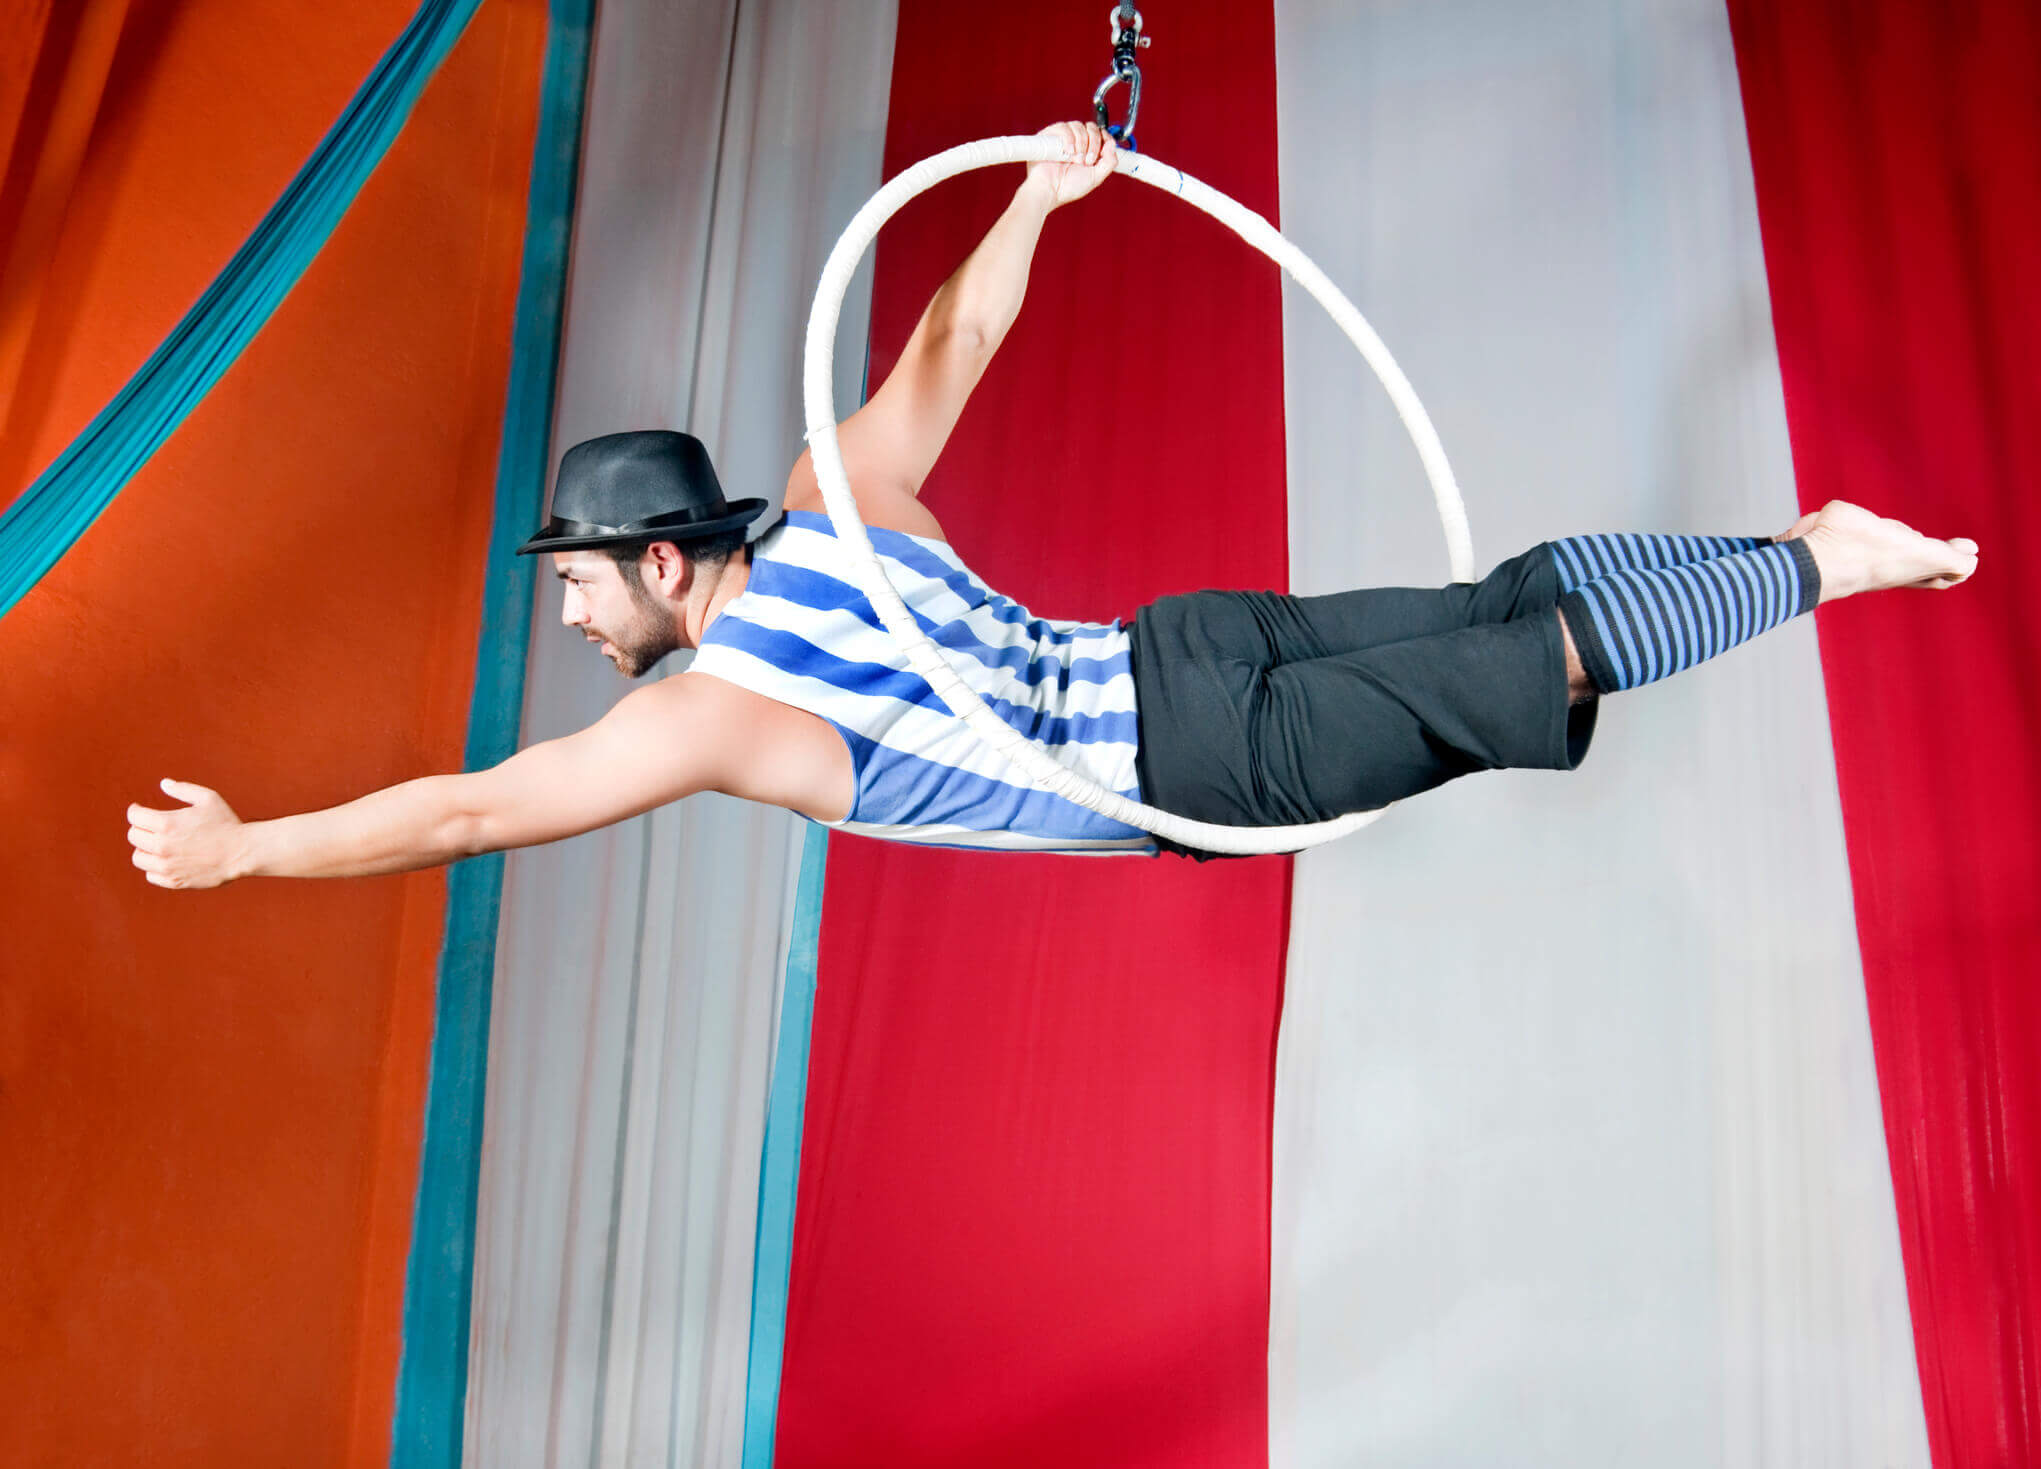 Amaze guests with daring and dazzling circus acts that will be sure to set your event apart from the rest.